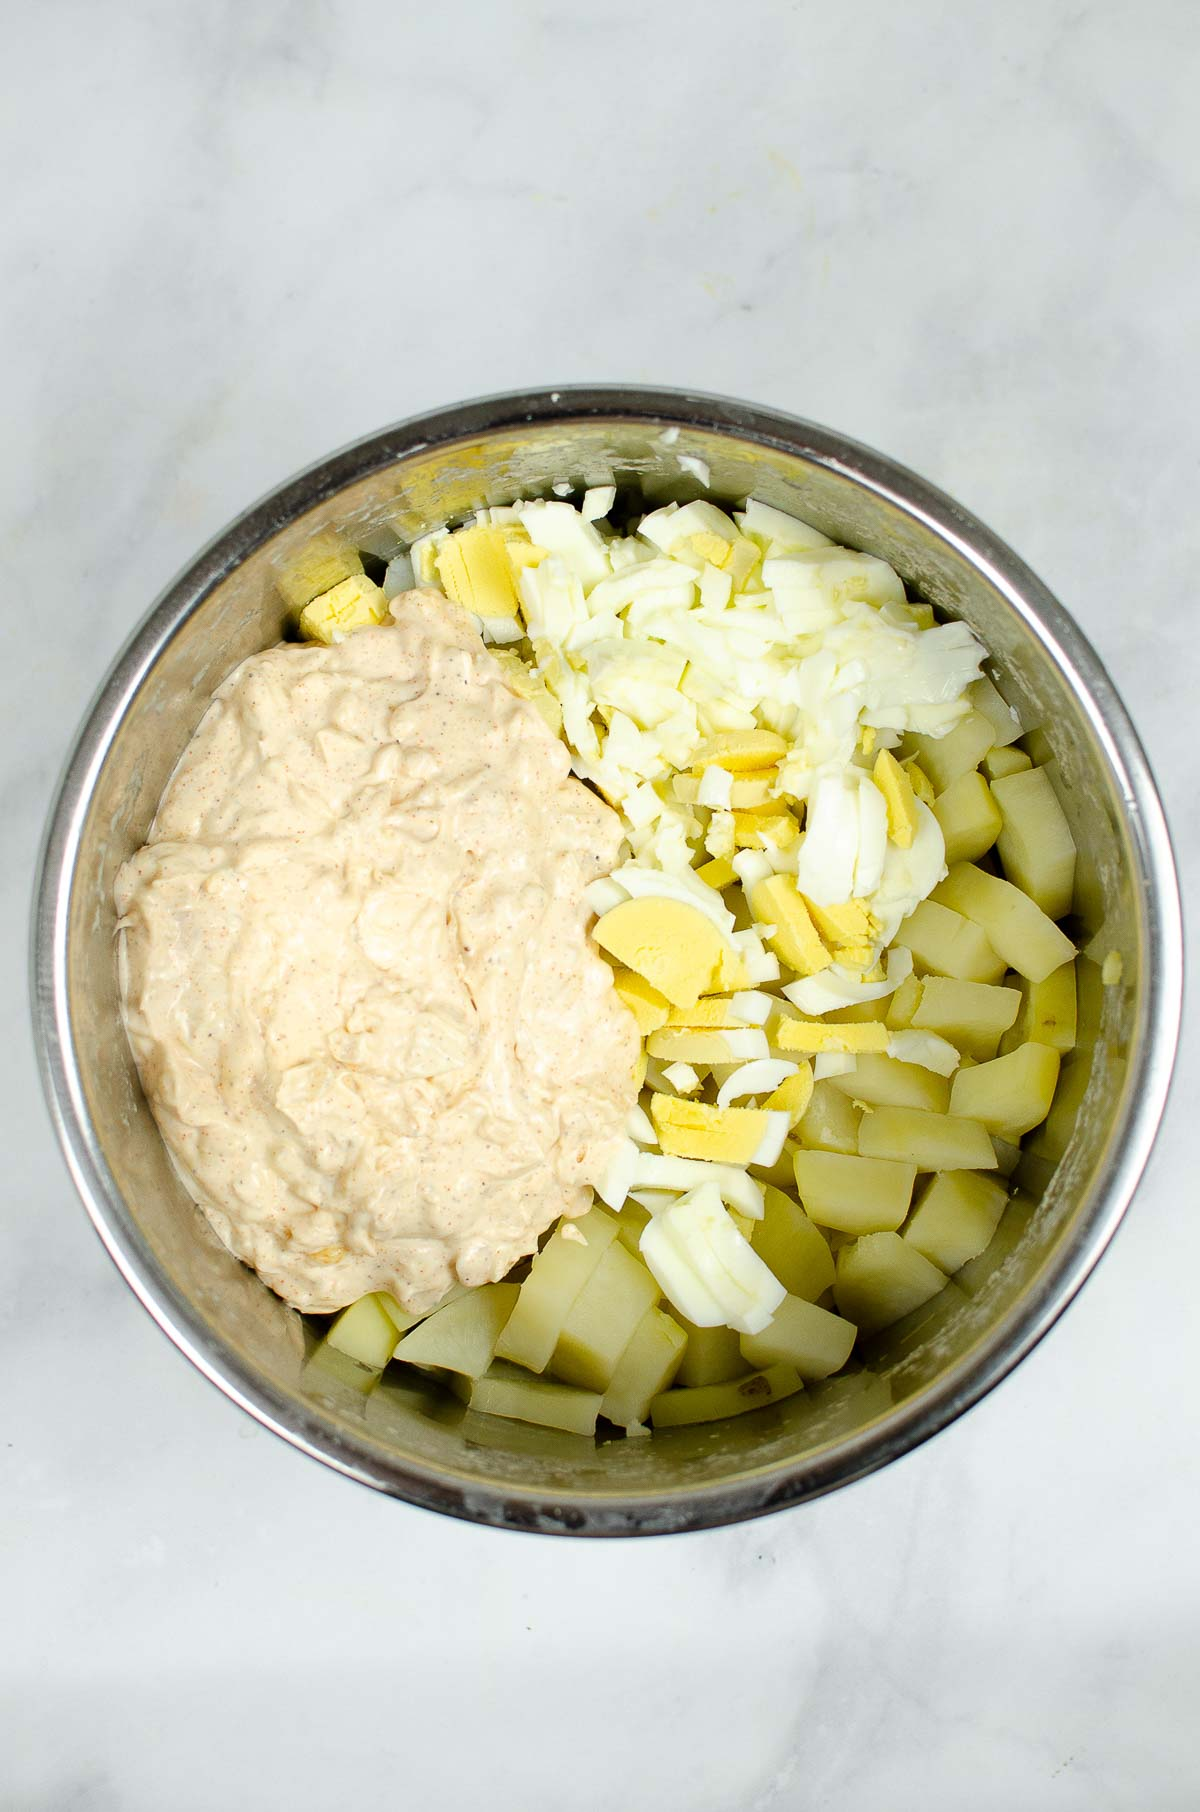 Chopped potatoes, eggs, and creamy dressing in the Instant Pot.